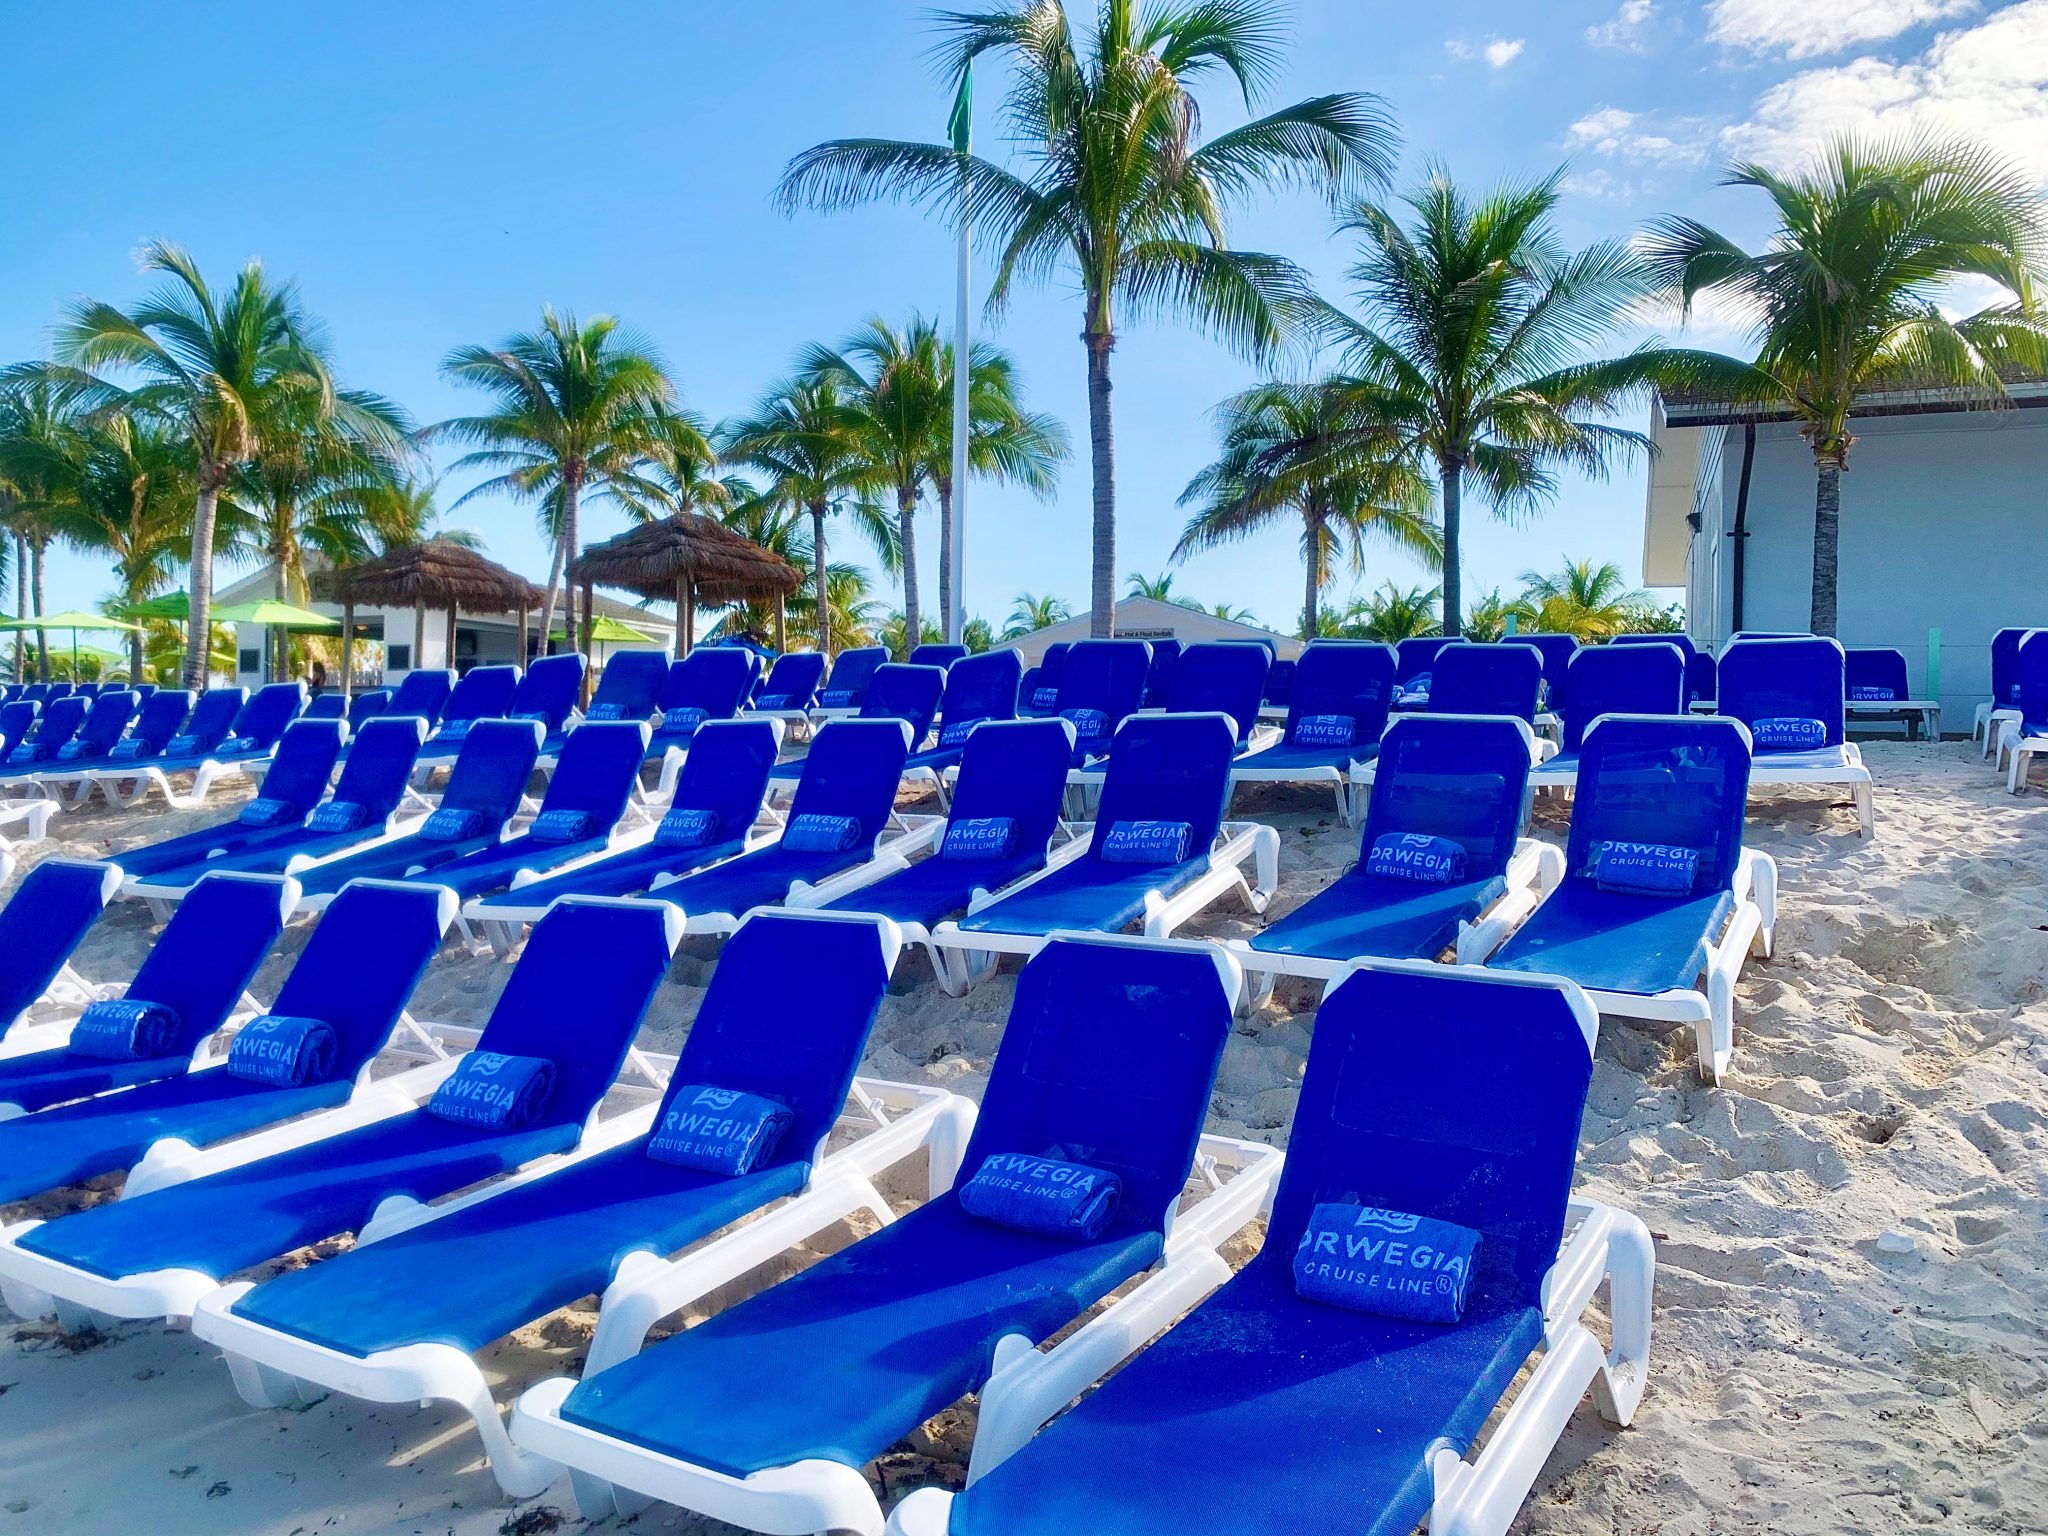 Top Things to Do in Great Stirrup Cay